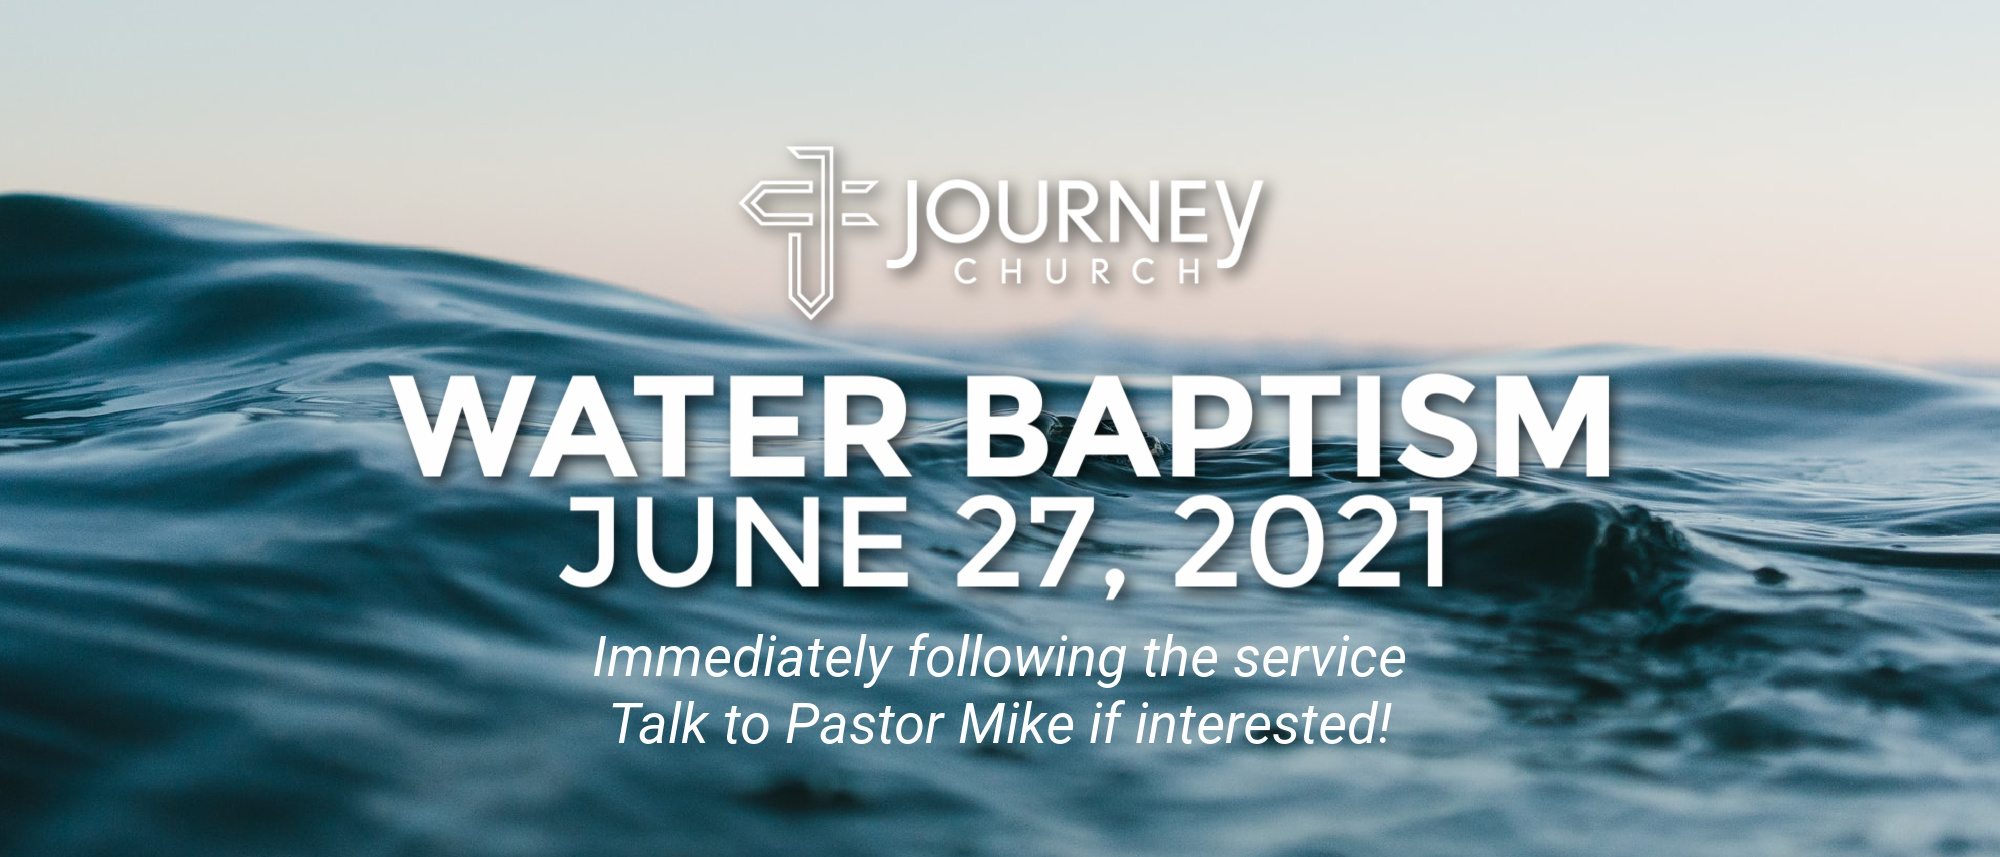 Interested in being baptized? Journey Church is hosting a water baptism on June 27th right after the service.